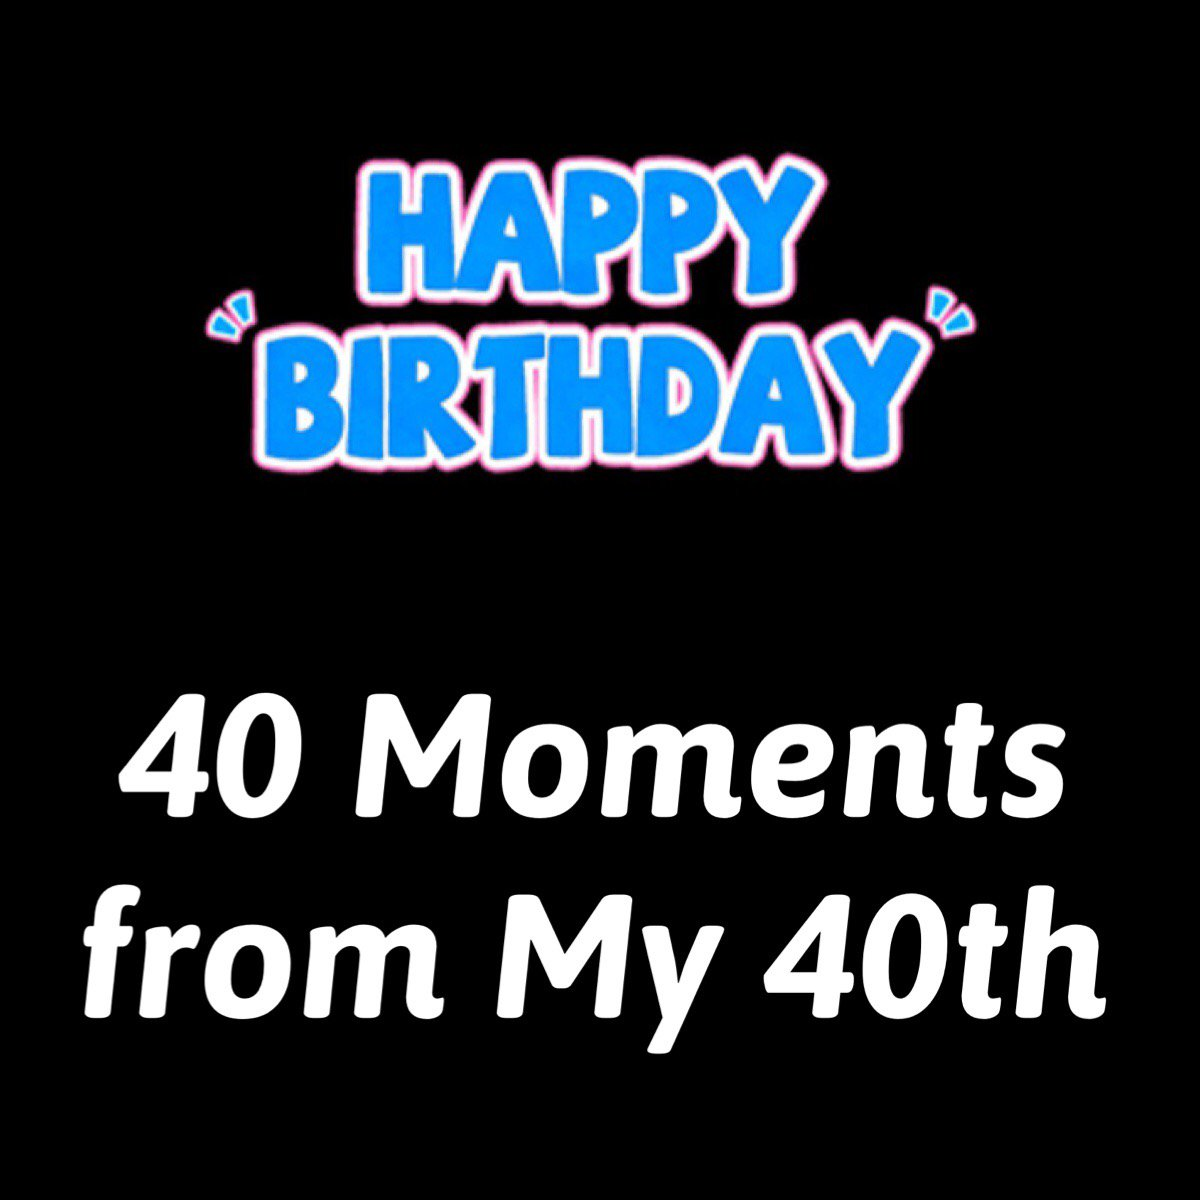 ⬇ 40 Moments from My 40th ⬇ https://t.co/o9o88NN3c6  Special Thanks for/to: Tesla Rental @turo Huge Suites @VenetianVegas The Laughs @Alibilasvegas  Special Op @AdventureCombat LA Style @SportsmensLodge My Gift @propstore_com Studio Tour @StoopidBuddy VIP Tickets @bigbangtheory https://t.co/SYqJ9lcT4y